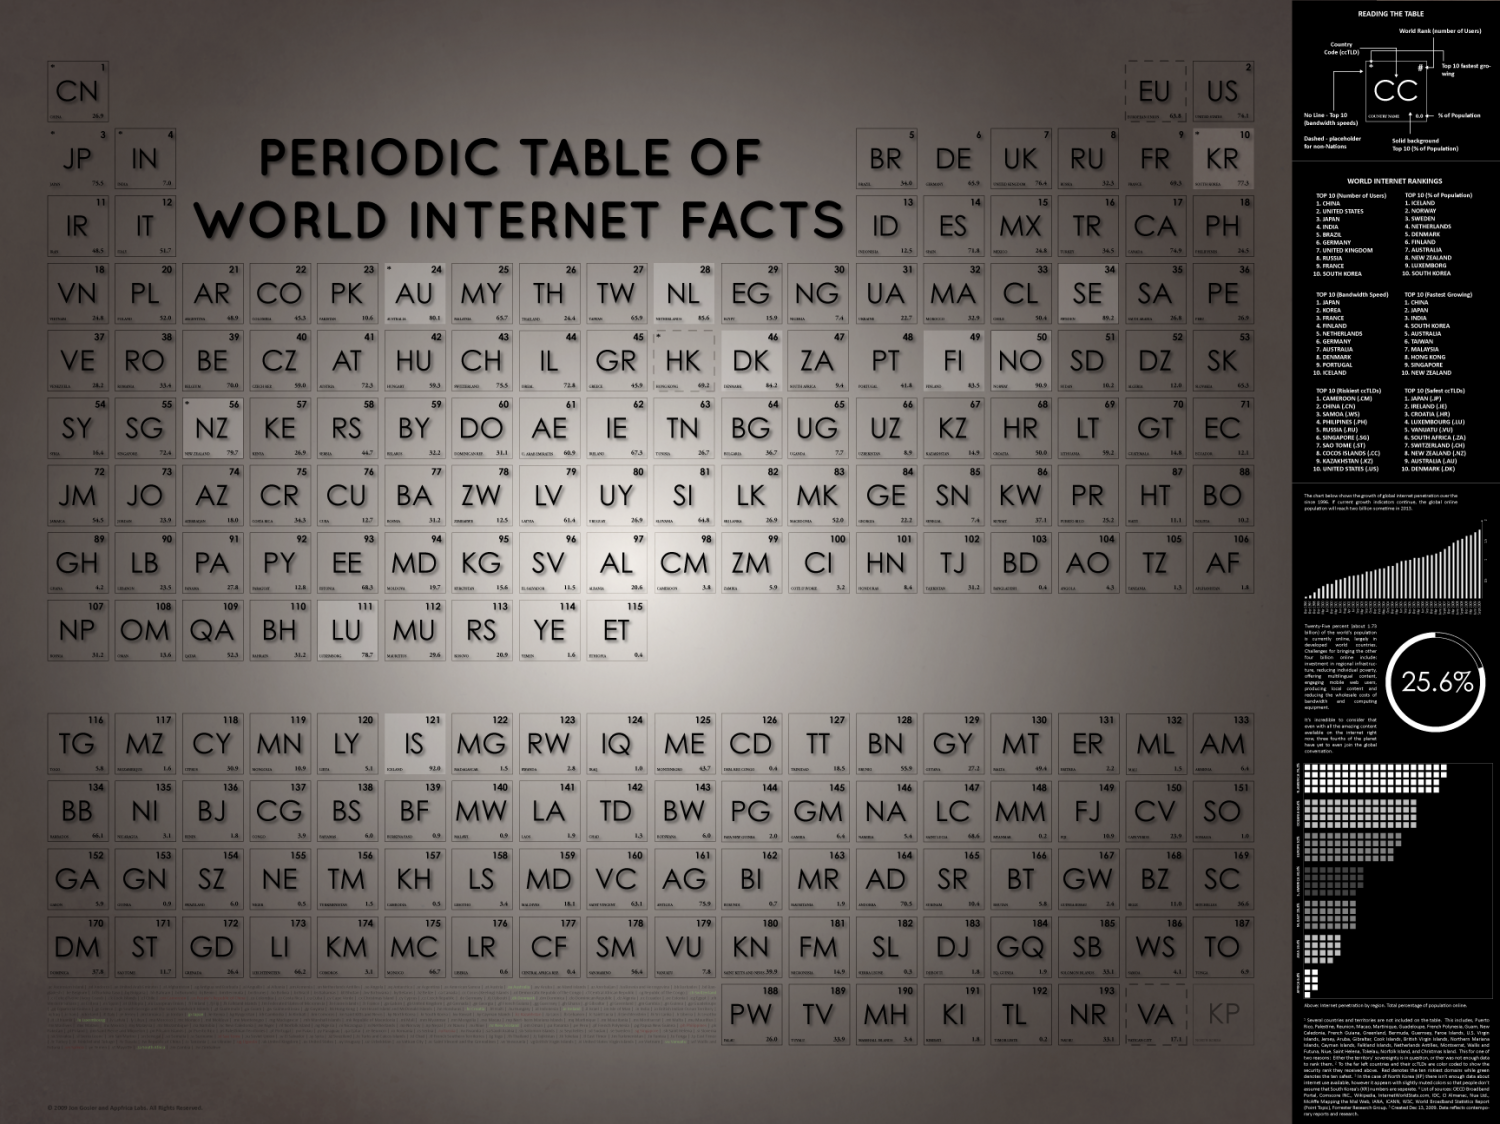 Periodic Table of Internet World Facts (2010) Infographic